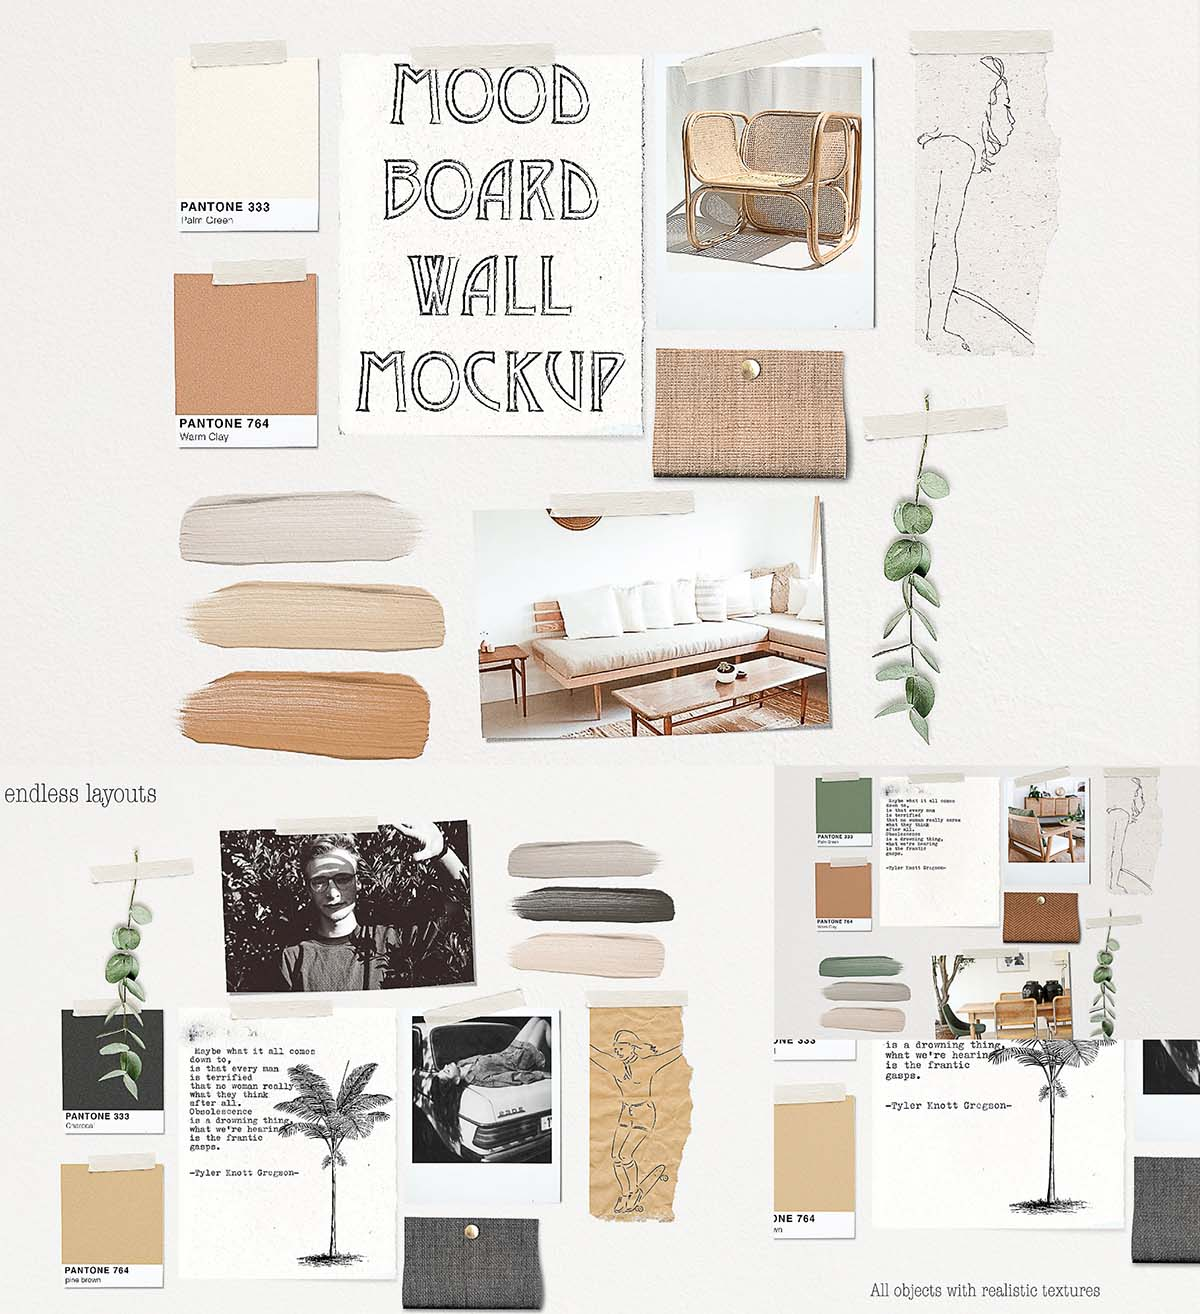 Design Your Own Home Free Software Mood Board Wall Mockup Free Download